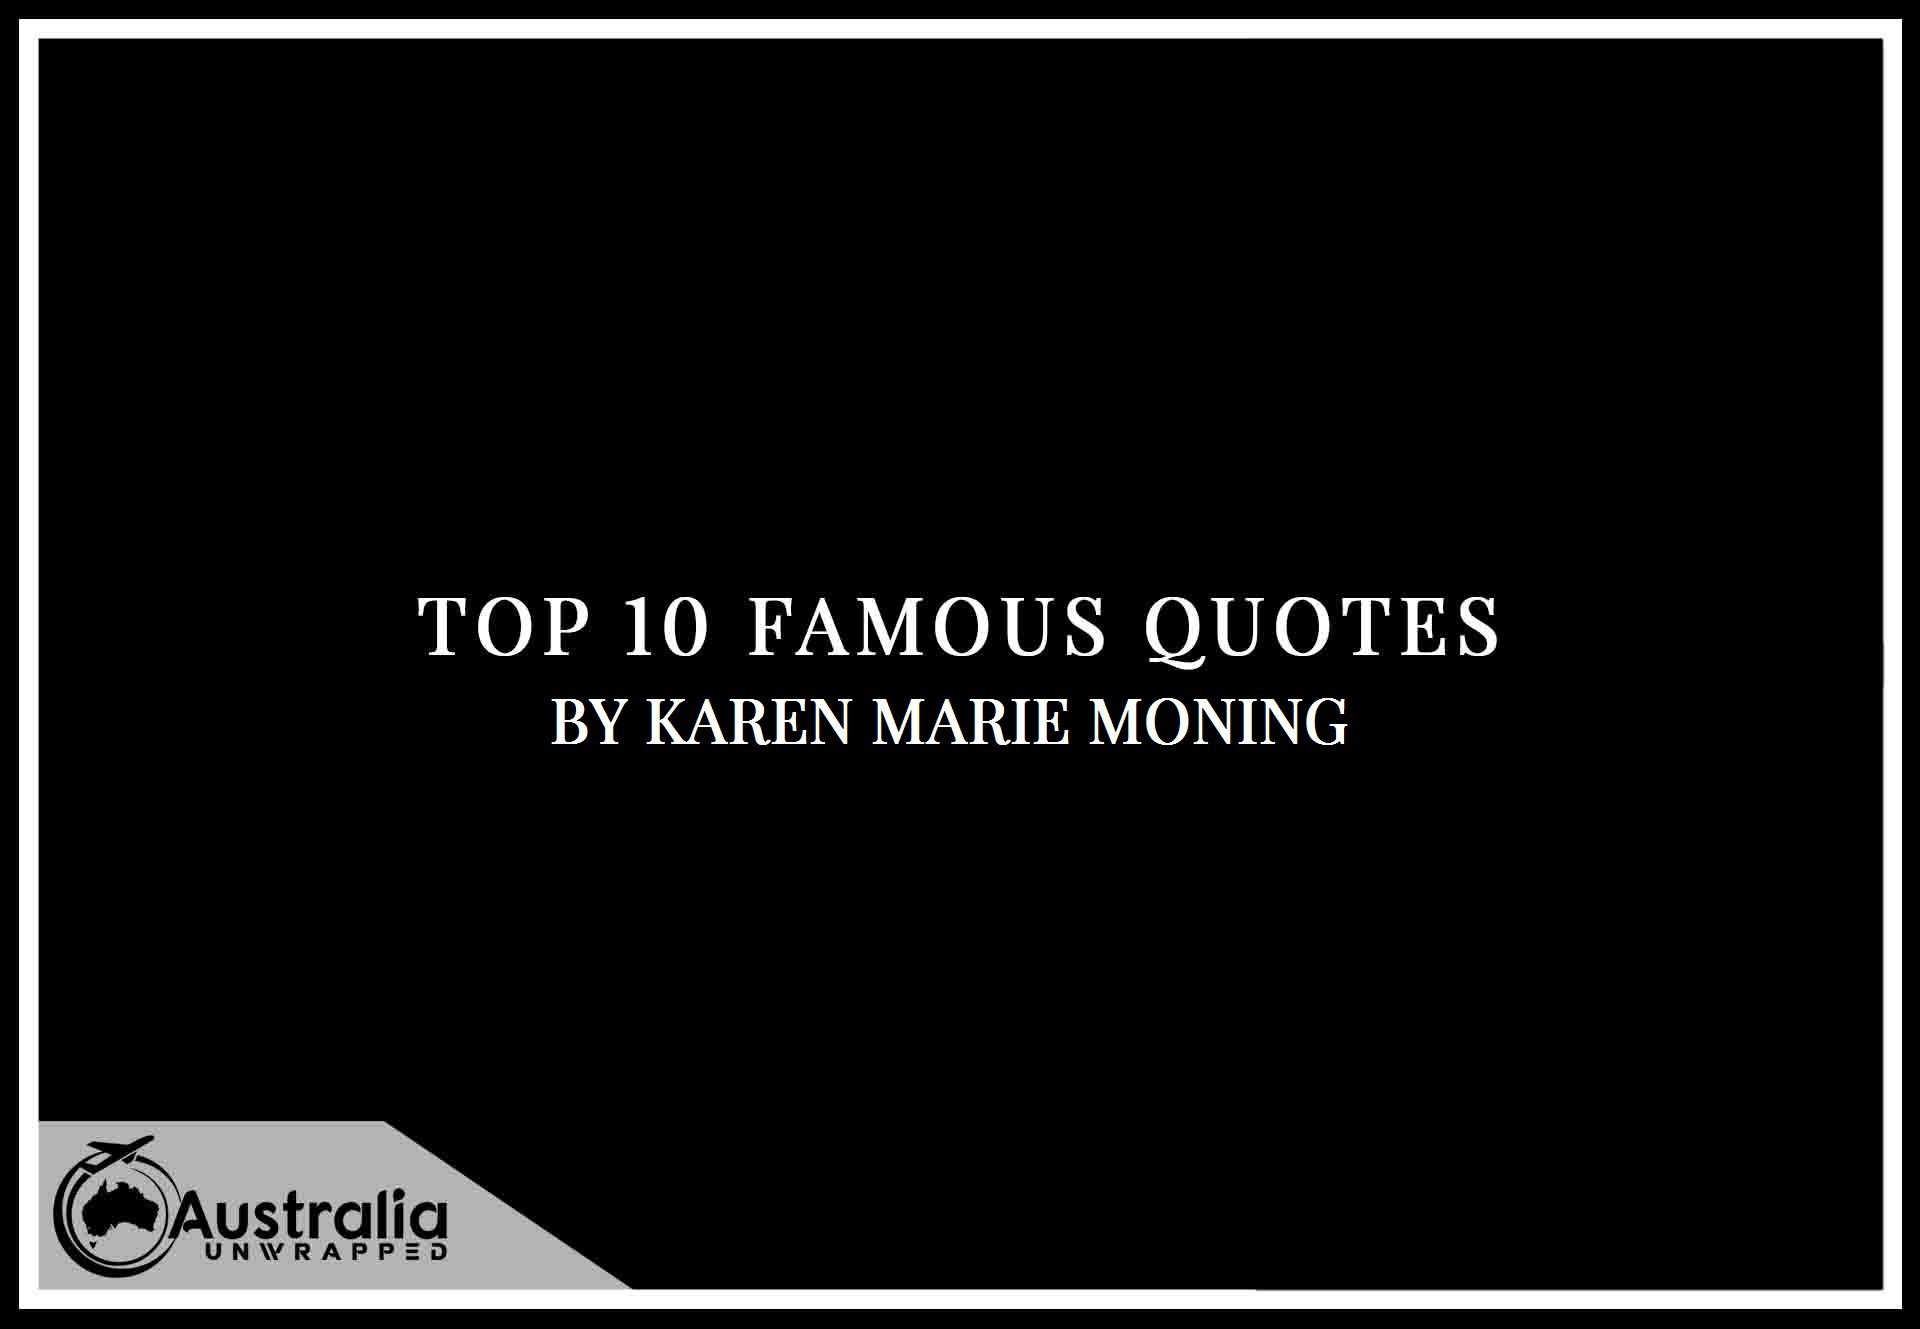 Karen Marie Moning's Top 10 Popular and Famous Quotes